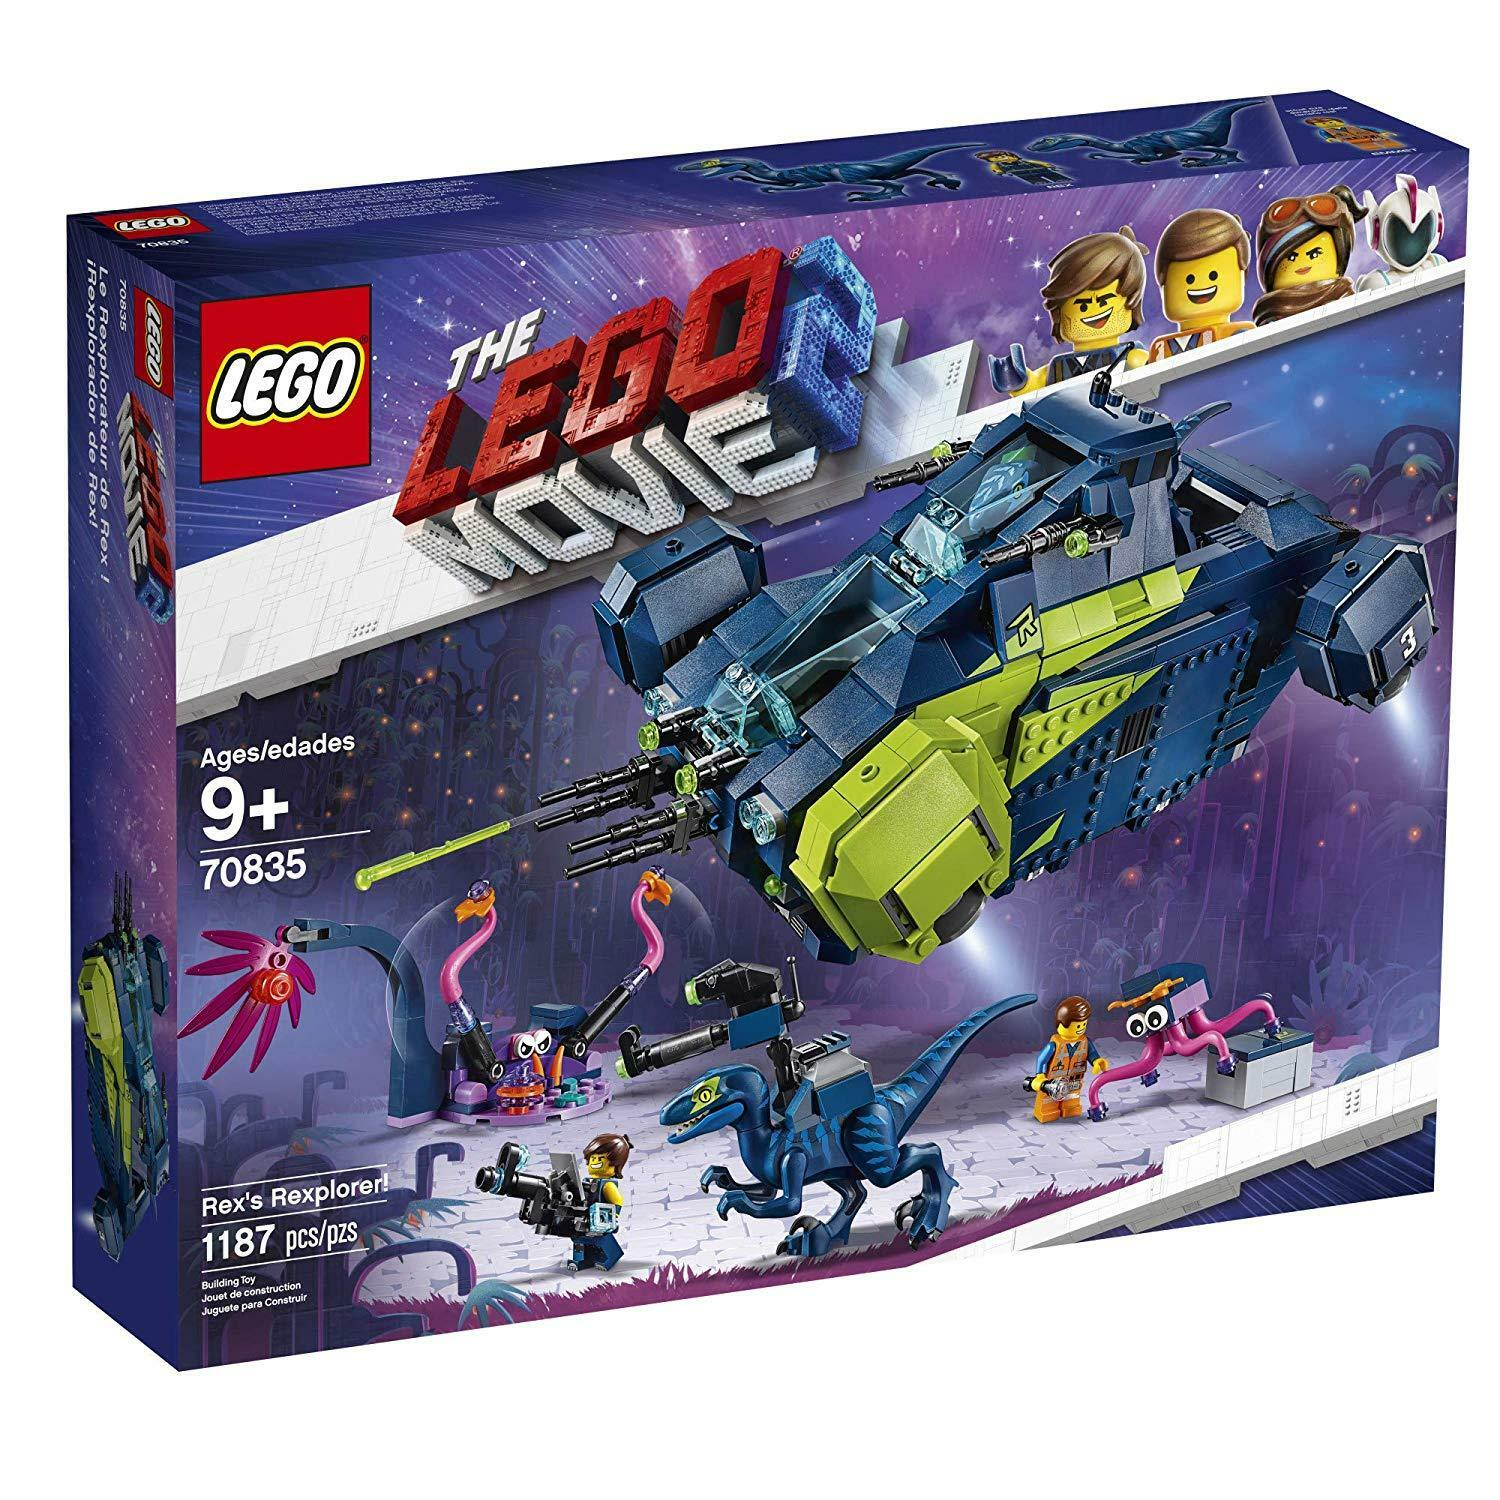 NEW NEW NEW Sealed  LEGO The Movie 2 Rex's Rexplorer  70835 Building Kit (1172 Piece) 584ee7